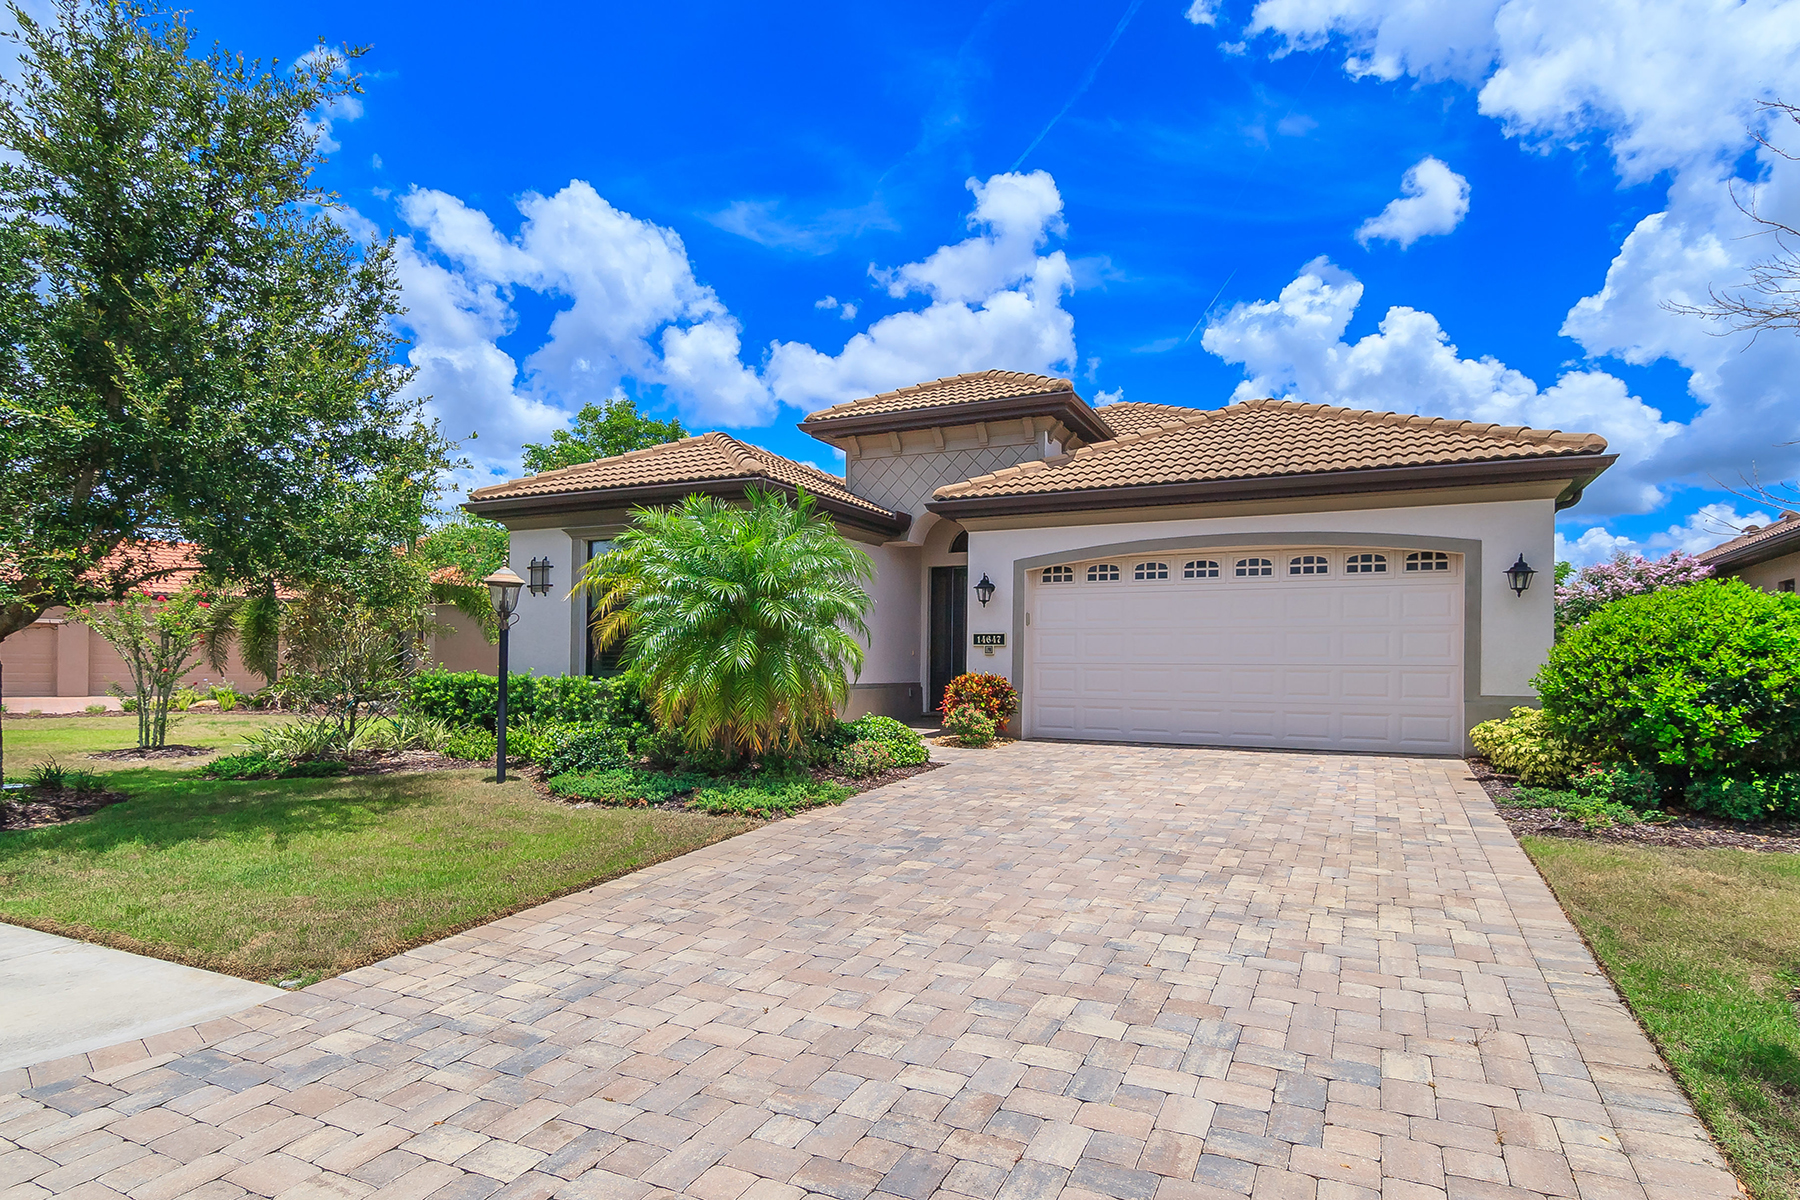 Single Family Home for Sale at COUNTRY CLUB EAST 14647 Newtonmore Ln Lakewood Ranch, Florida, 34202 United States